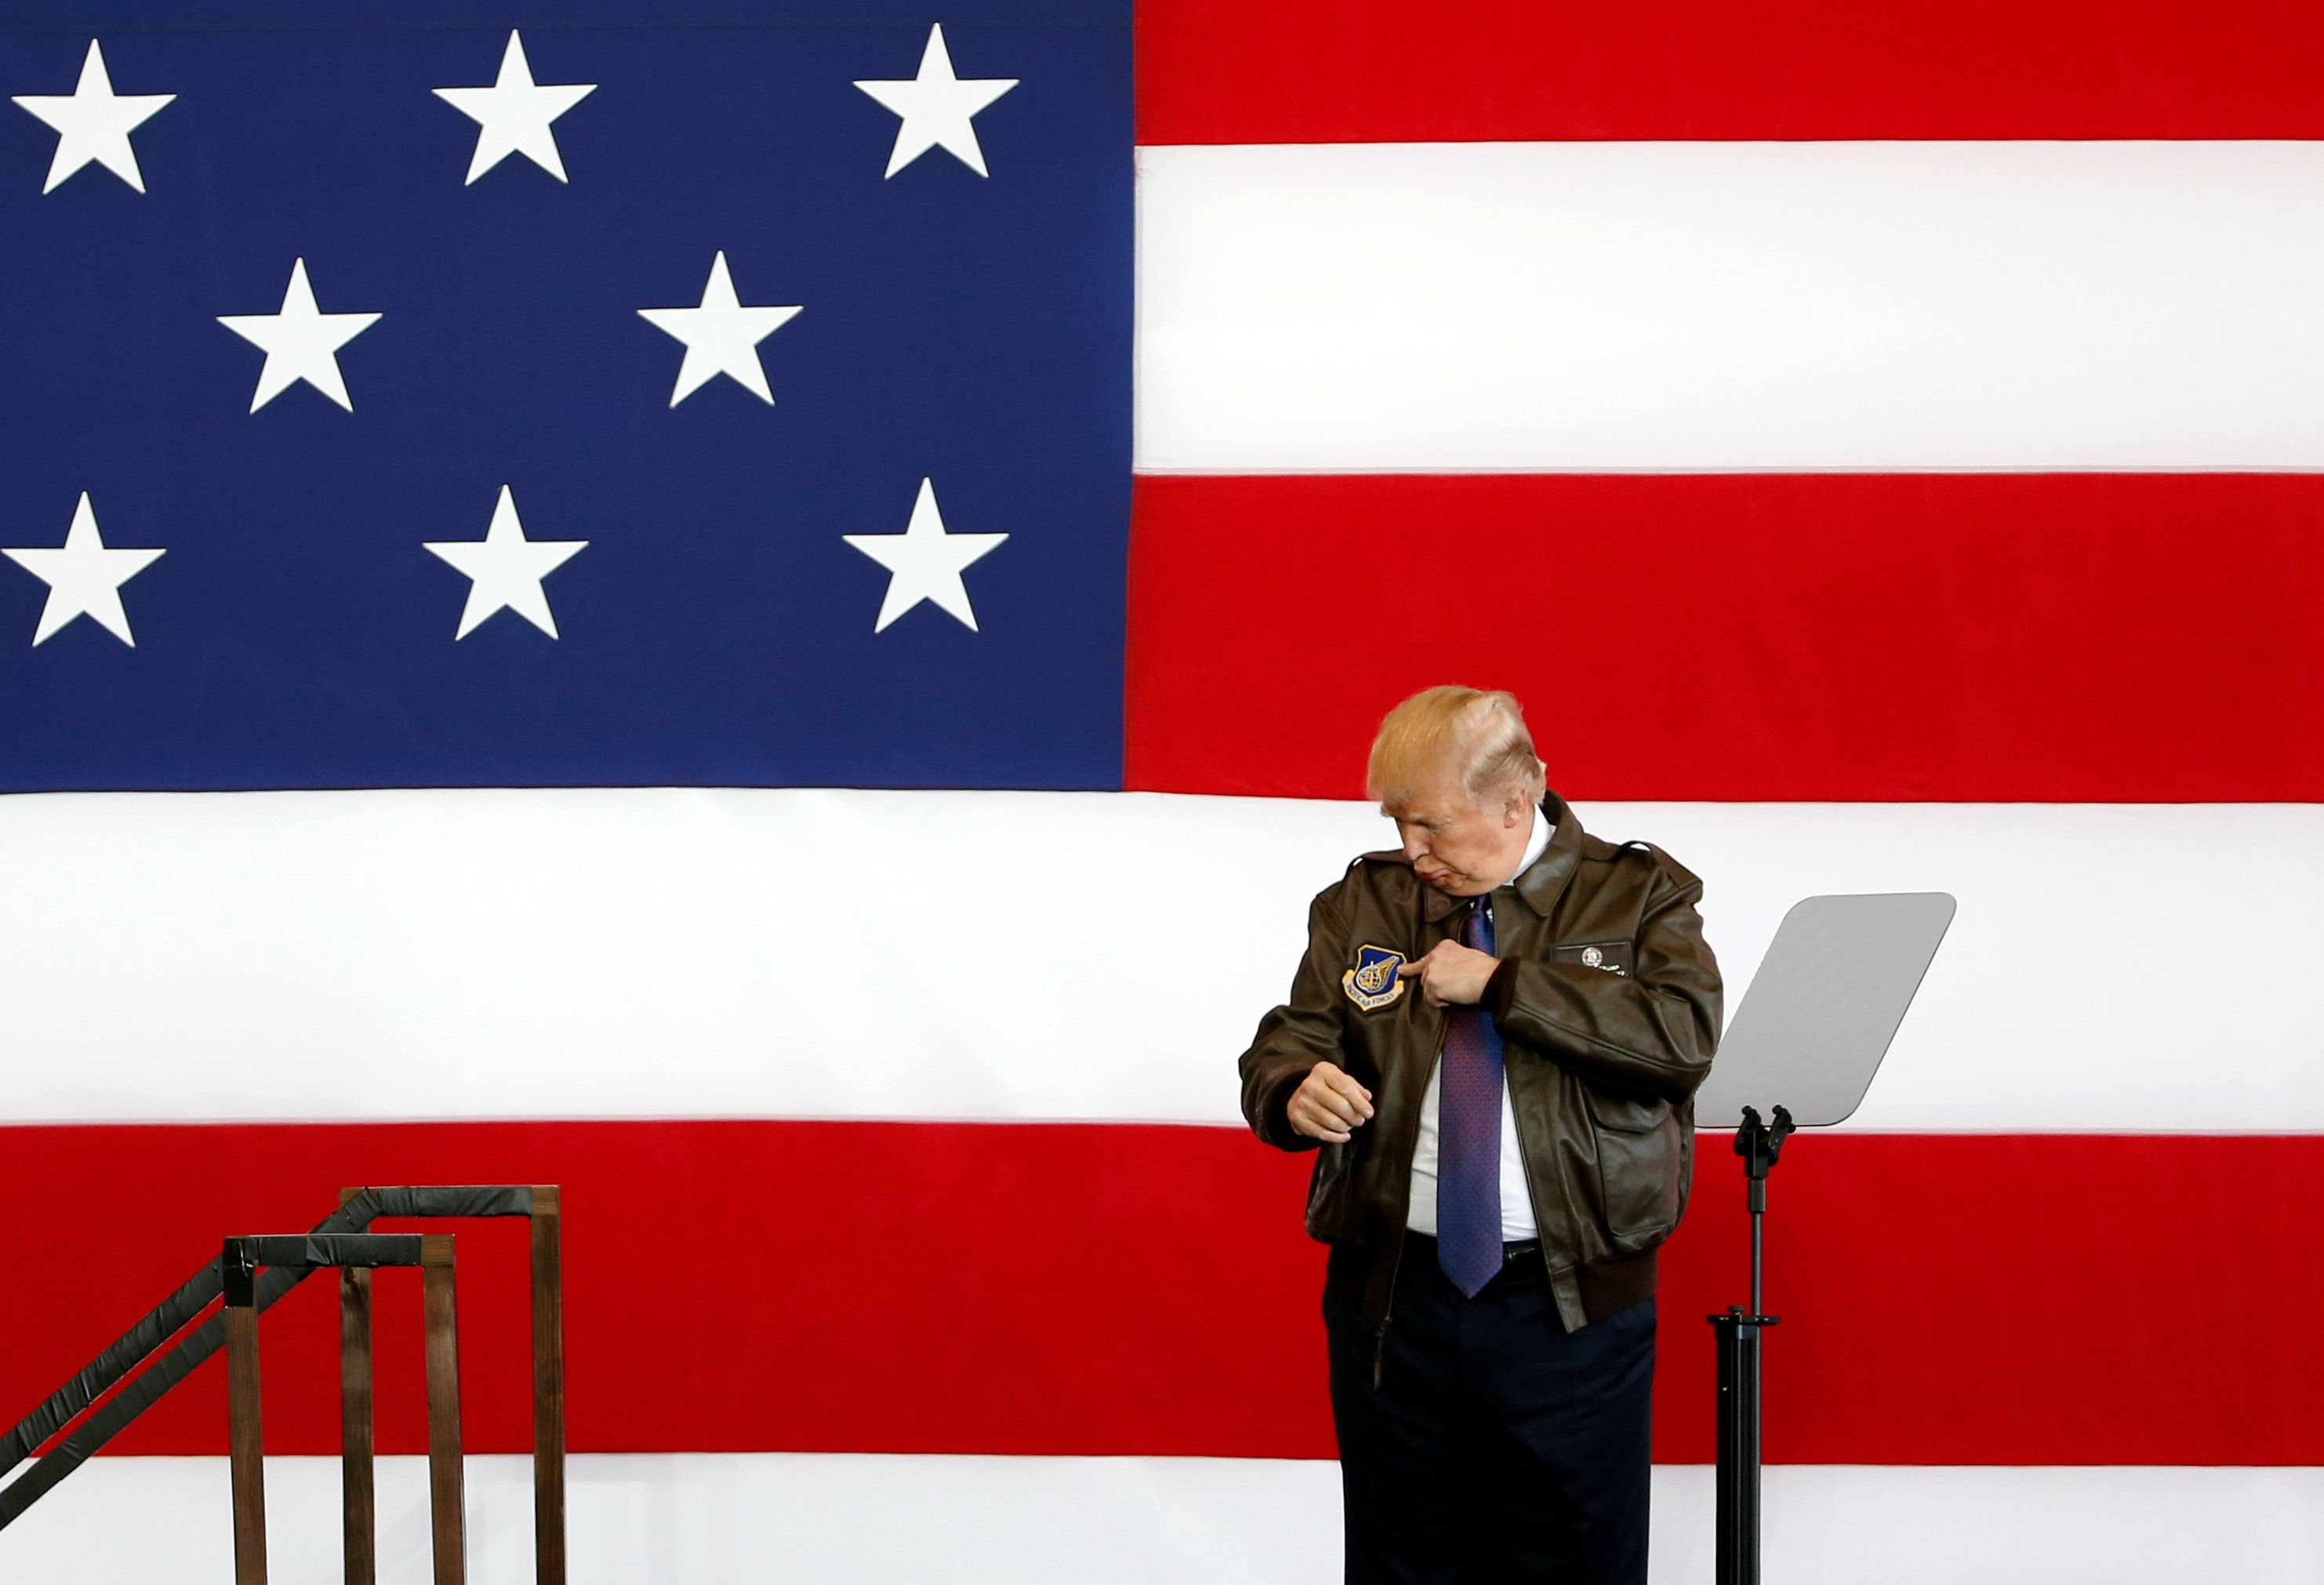 President Donald Trump points to a detail on his flight jacket while on stage at a U.S. Air Force base on the outskirts